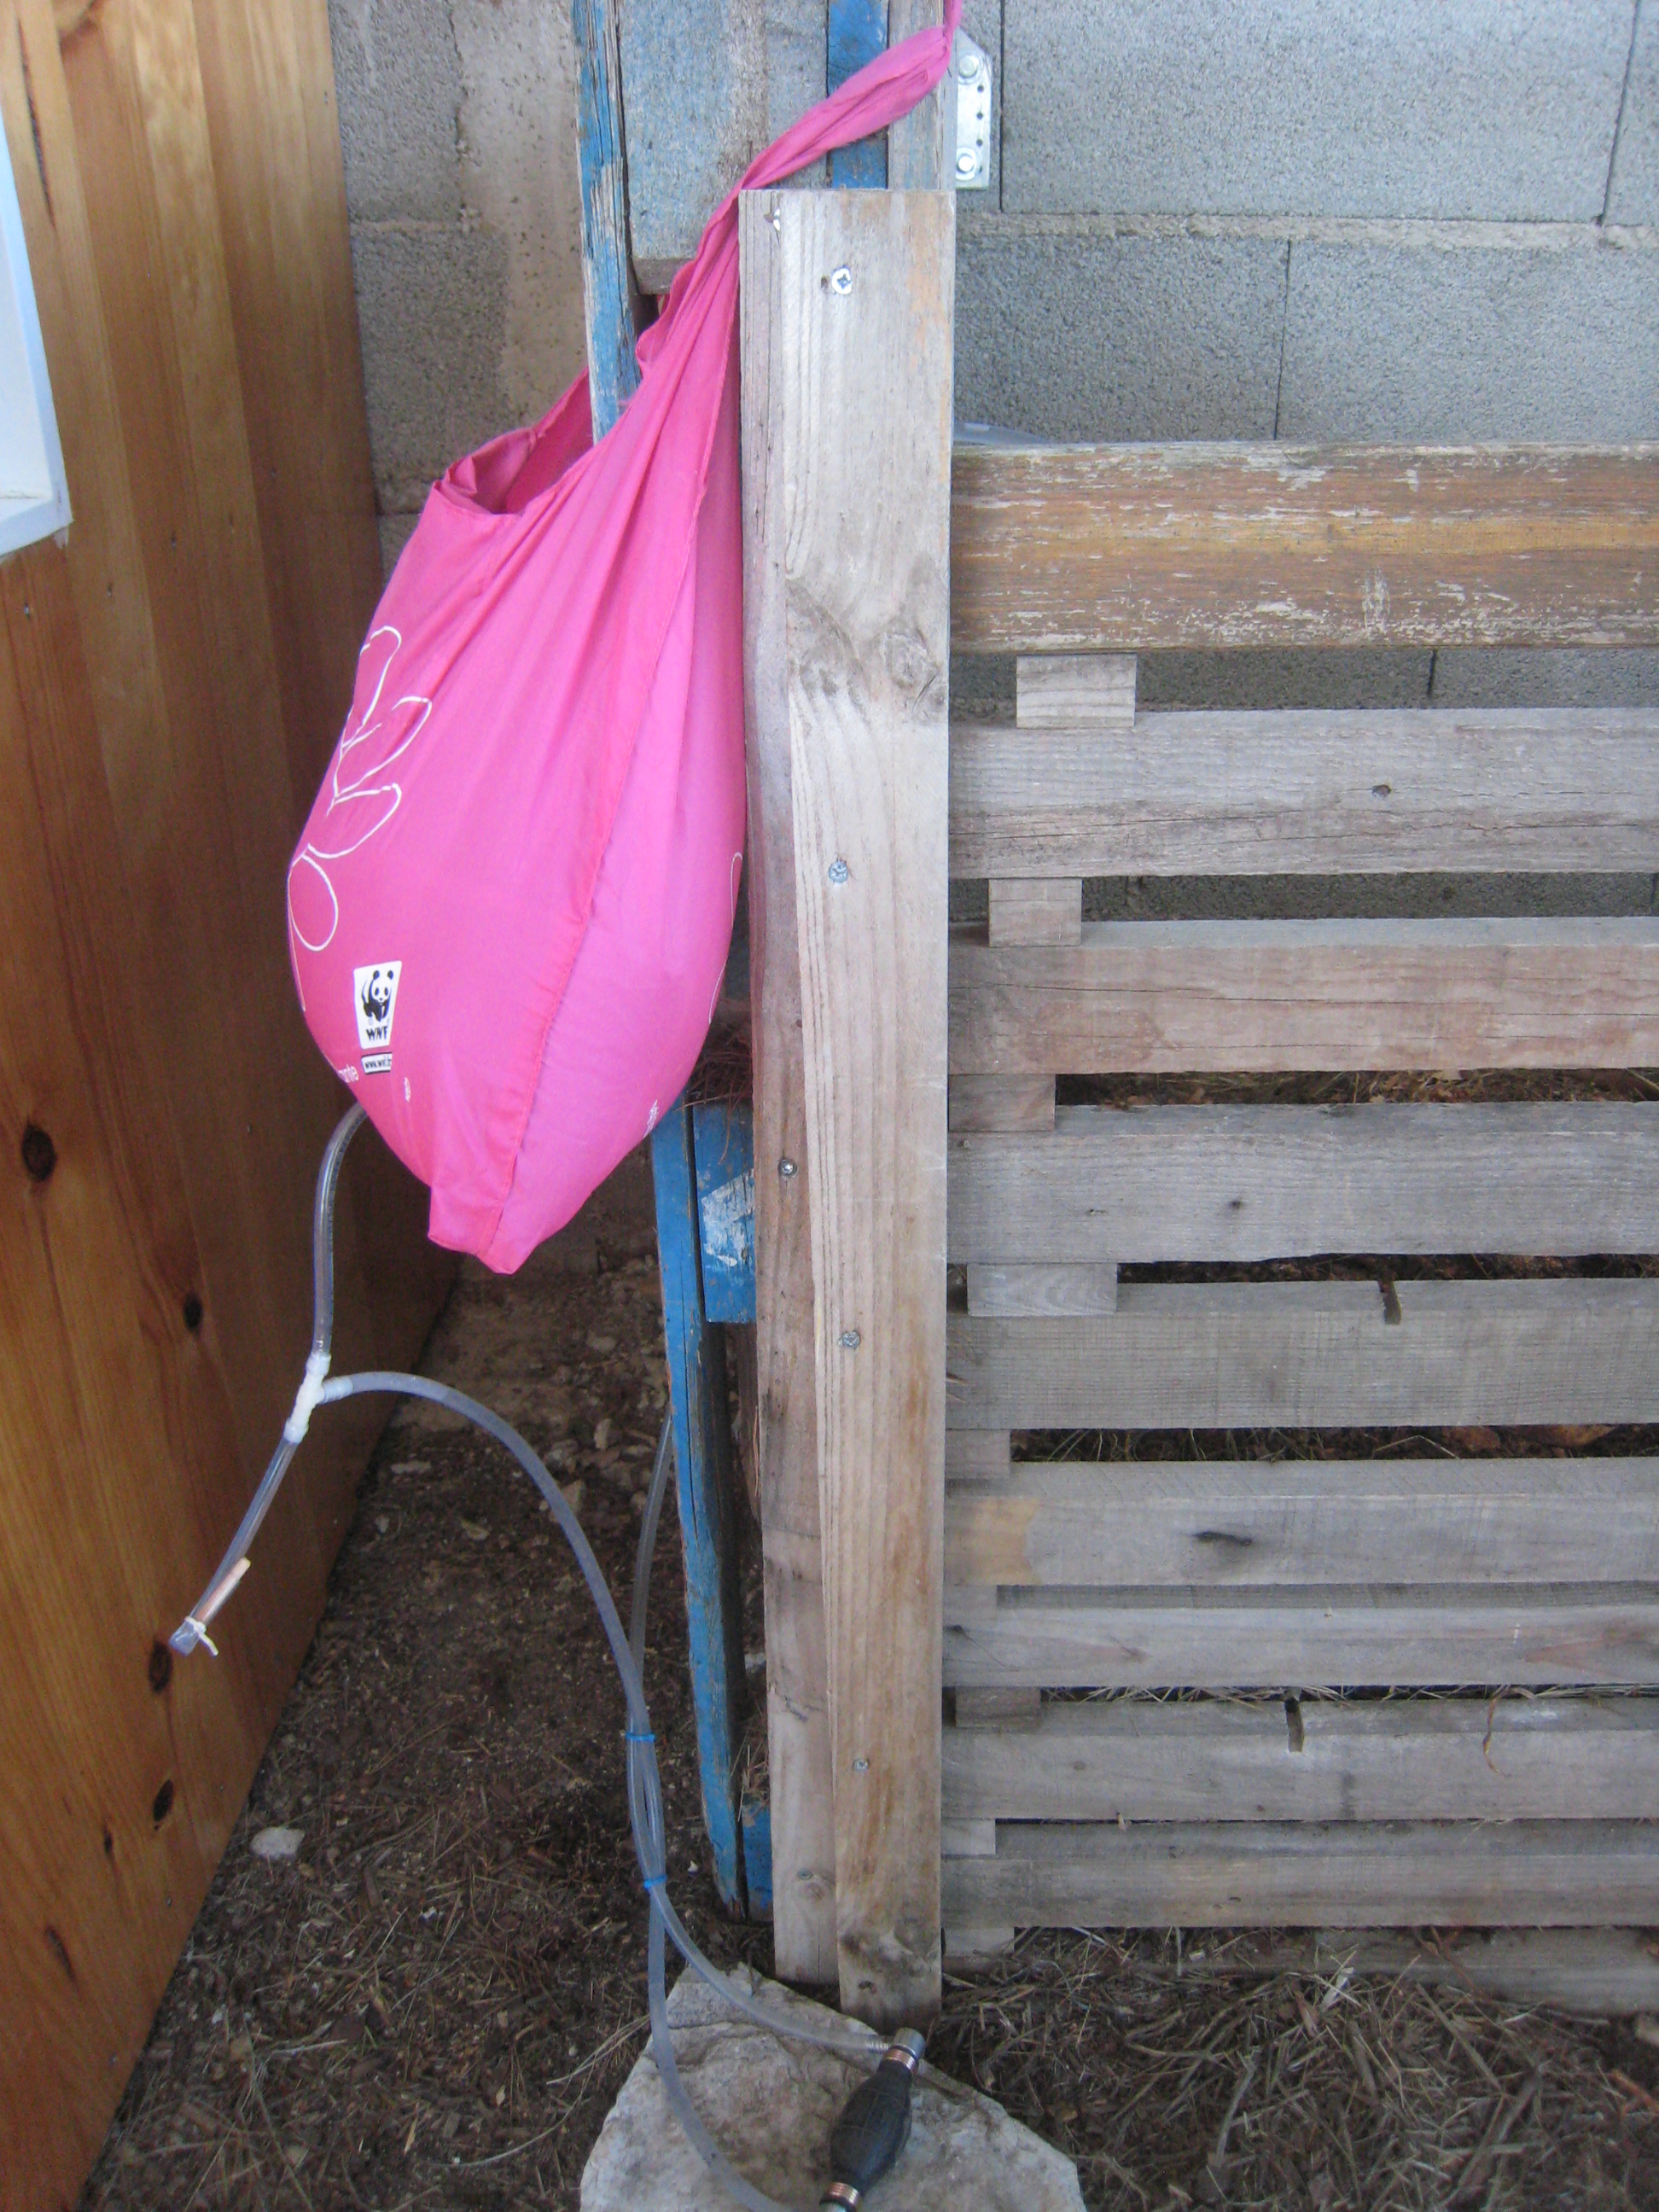 Picture of Transposition to Backyard Dry Toilets Washing Hand Solution